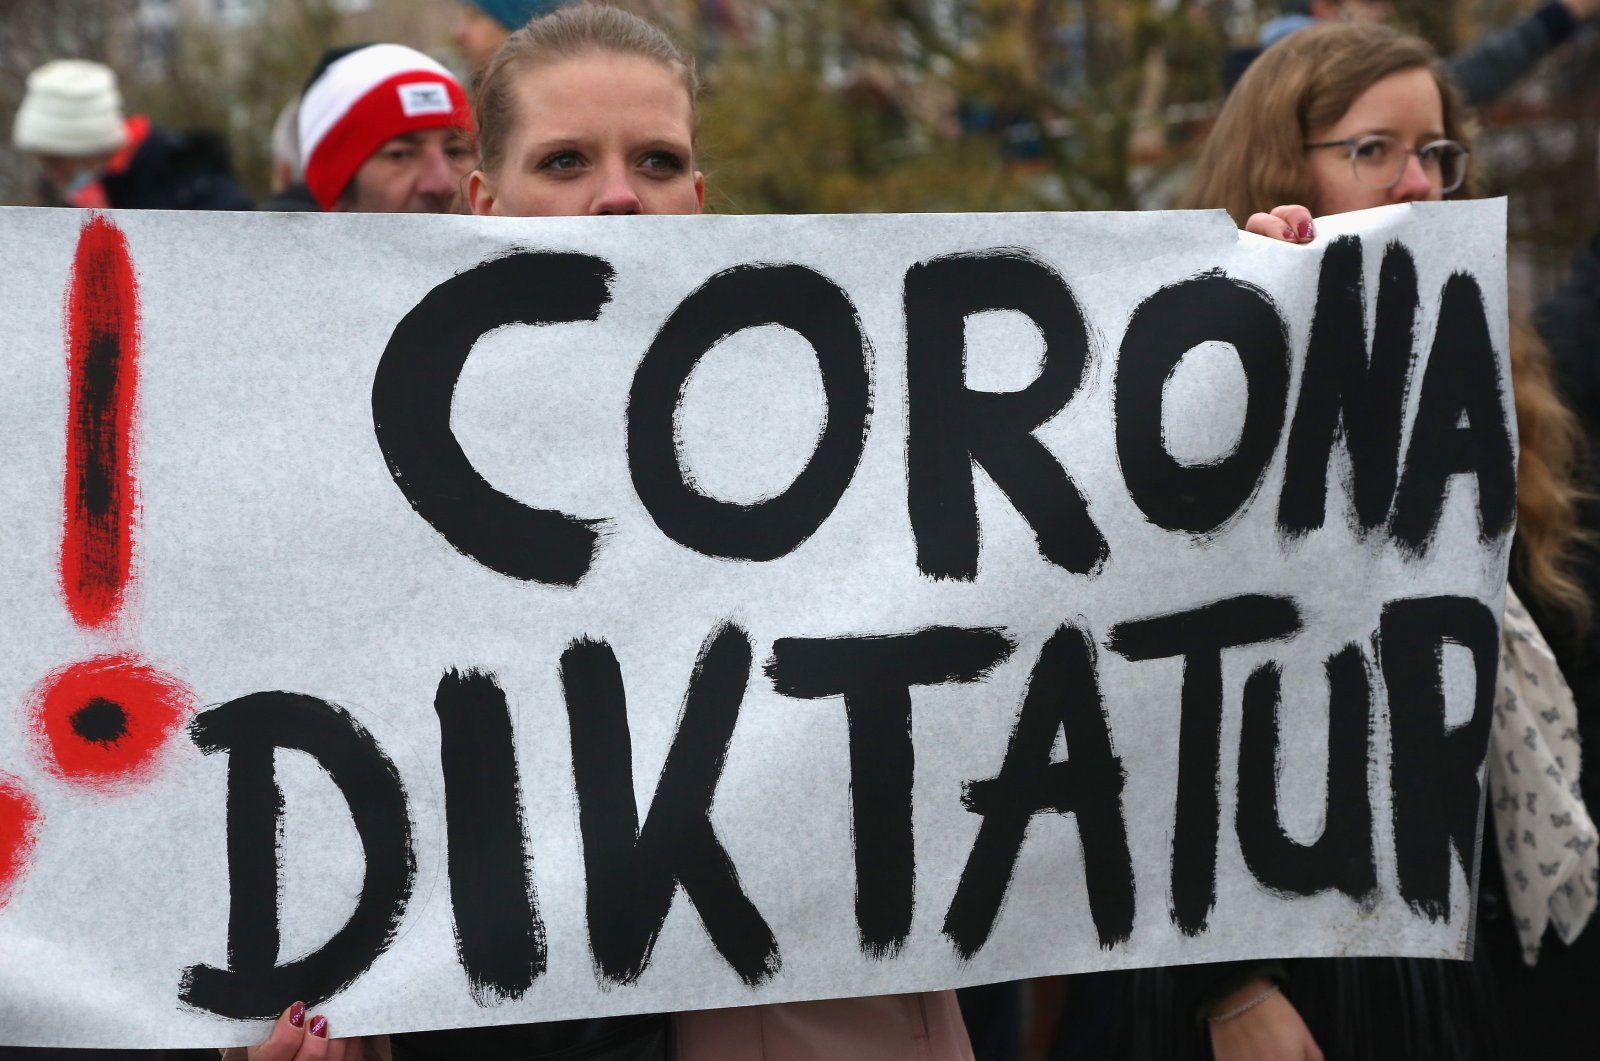 Protesters take part in a demonstration against the measures to curb the spread of the coronavirus (COVID-19), in Frankfurt an der Oder, Germany, Nov. 28, 2020. (AFP Photo)